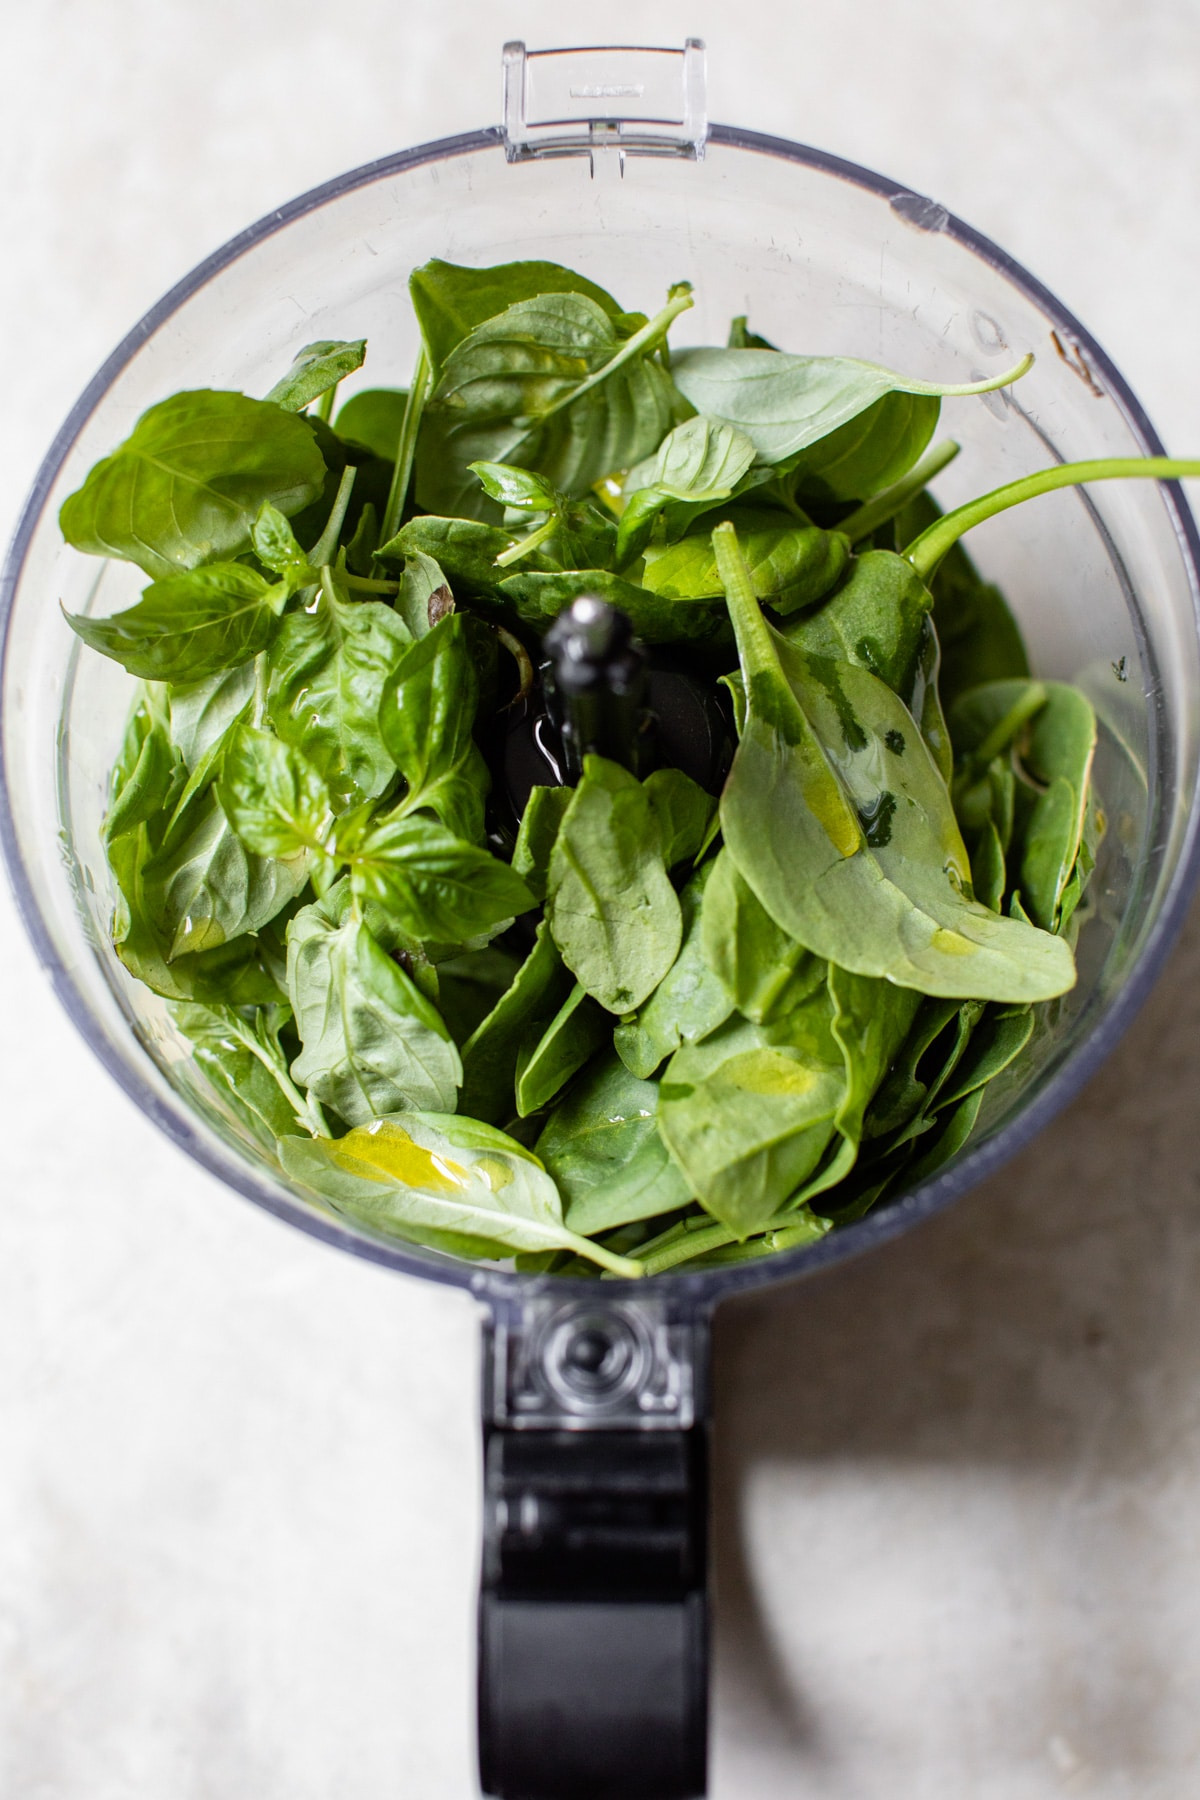 spinach and basil in a food processor